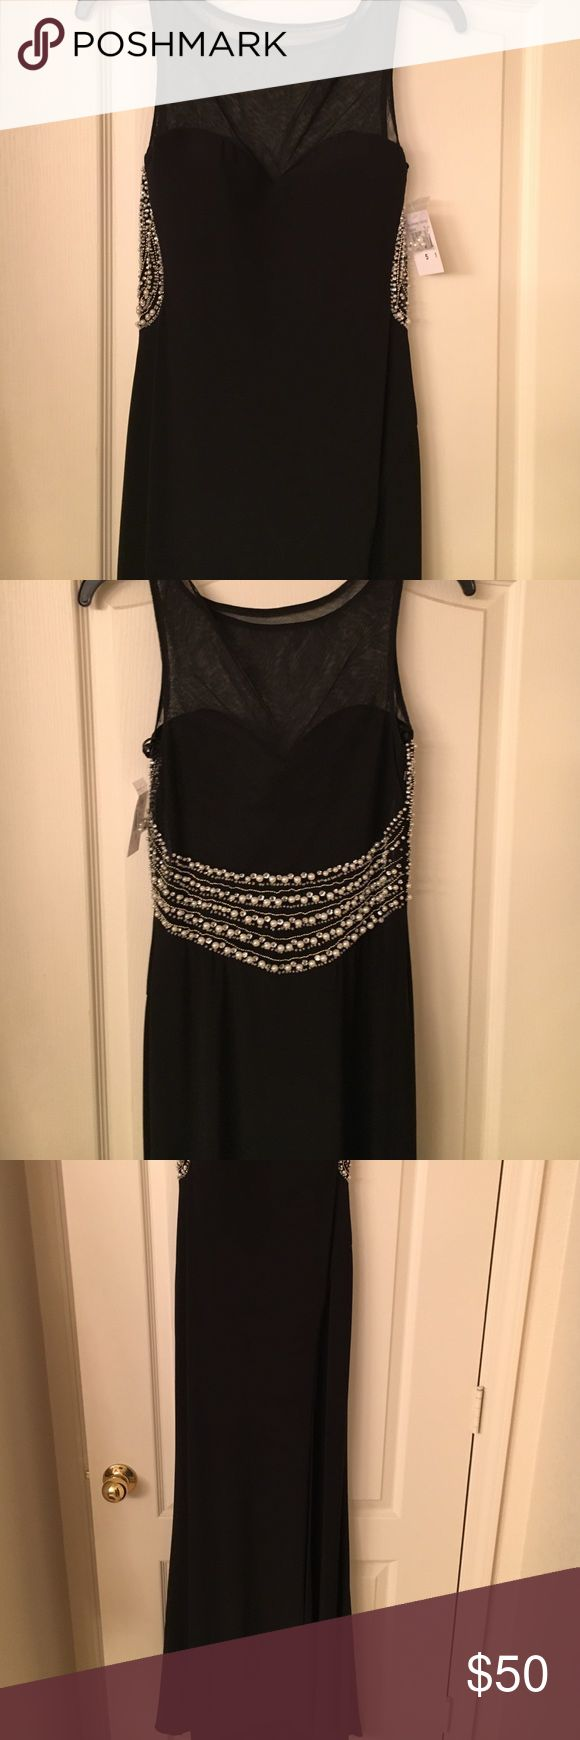 Long black formal dress Blonde nites formal black dress with pearl and sequin on back.  Size 5 junior.  Floor length. New with tags.  Great for homecoming or prom or formal affair. Blondie Nites Dresses Prom